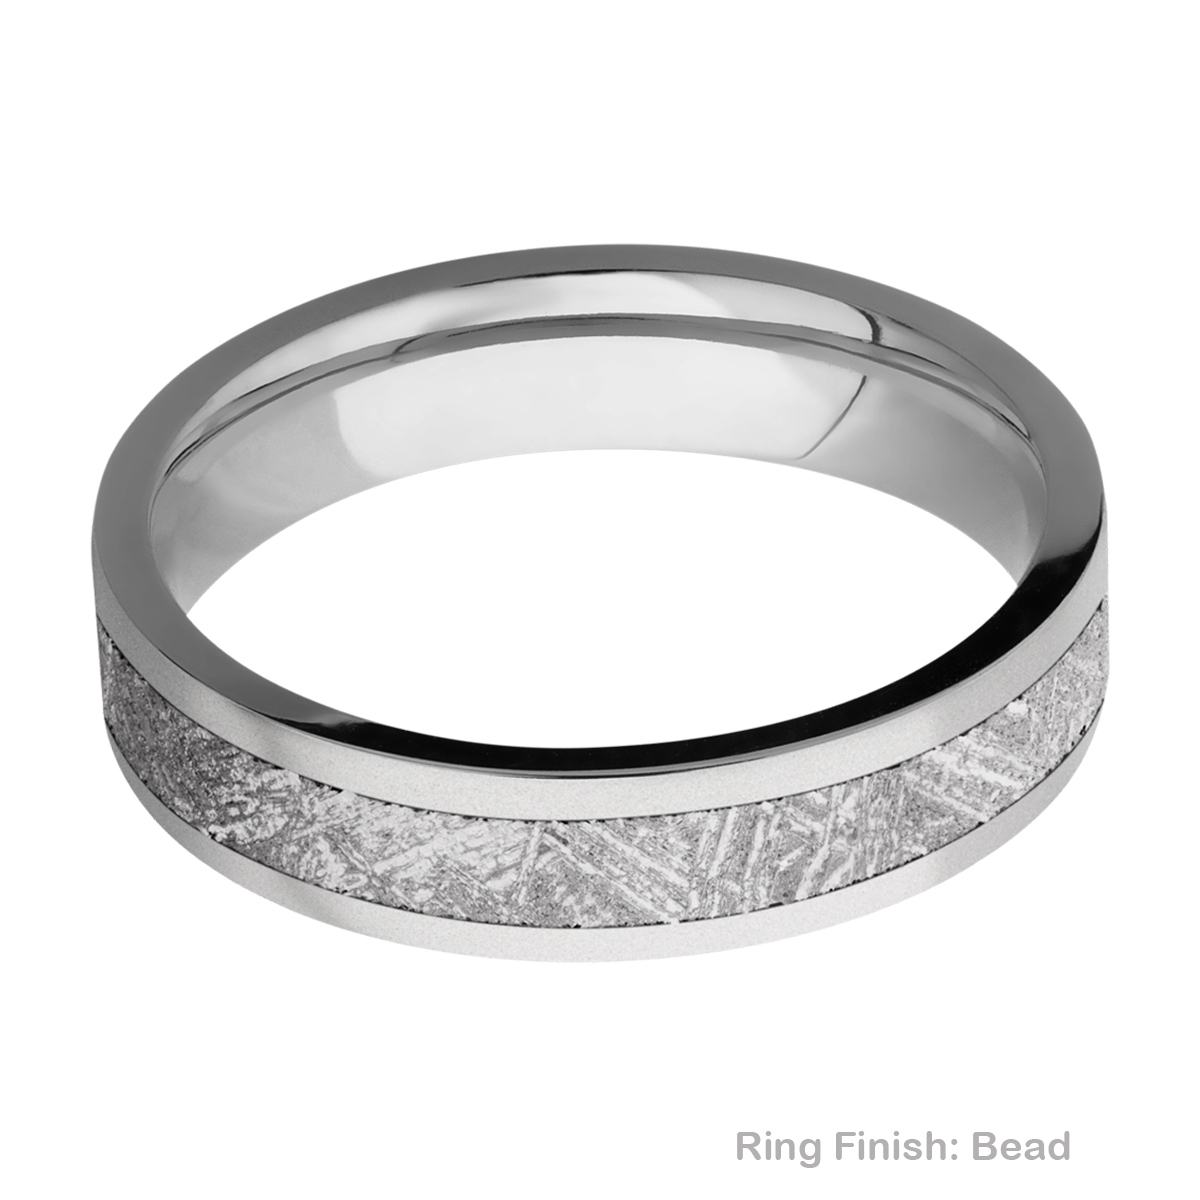 Lashbrook 5F13/METEORITE Titanium Wedding Ring or Band Alternative View 2